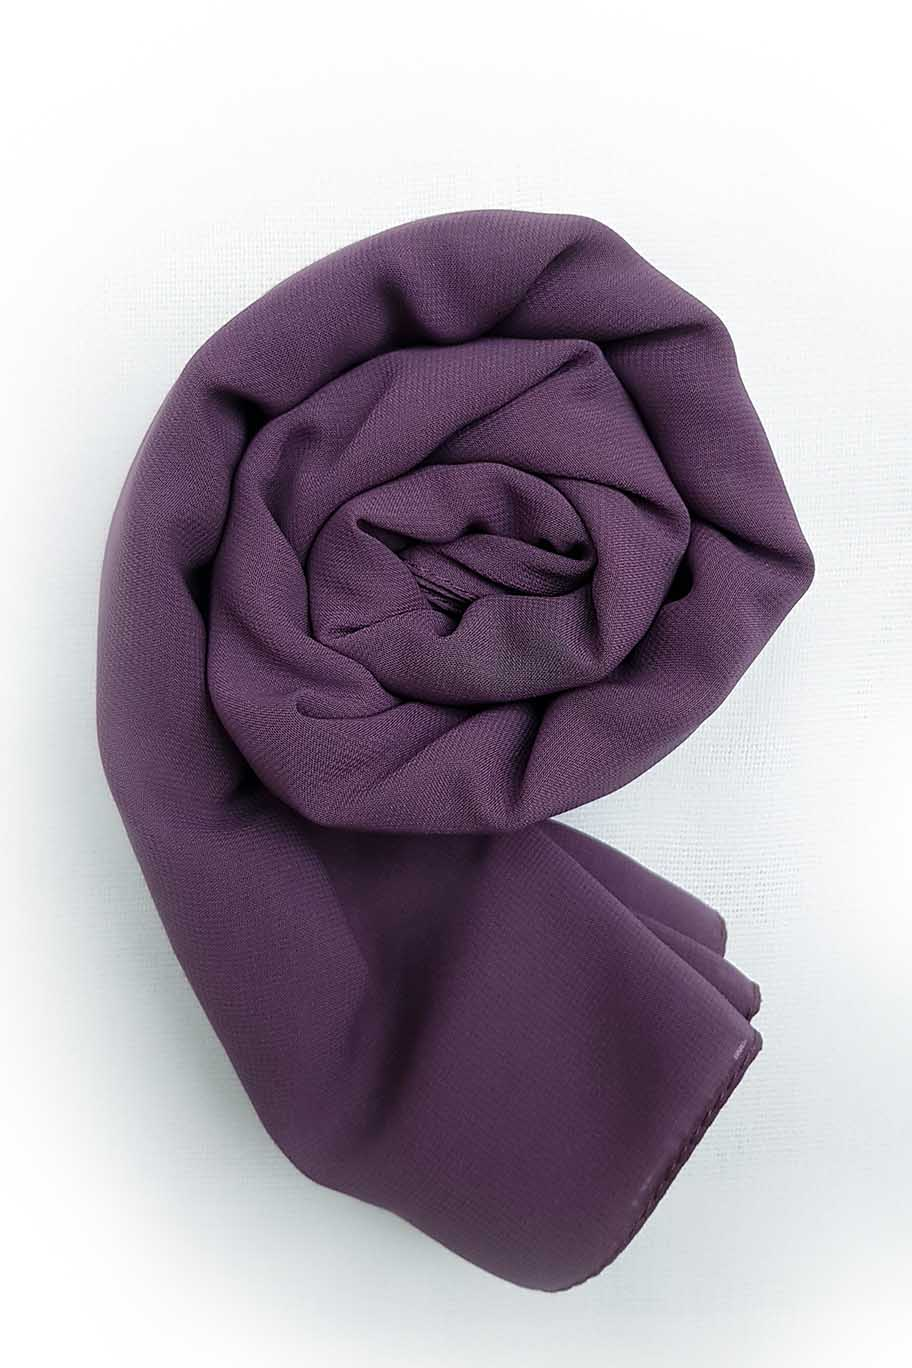 Grapes Mauve Chiffon Hijab - Chiffon Hijab - The Modest Look